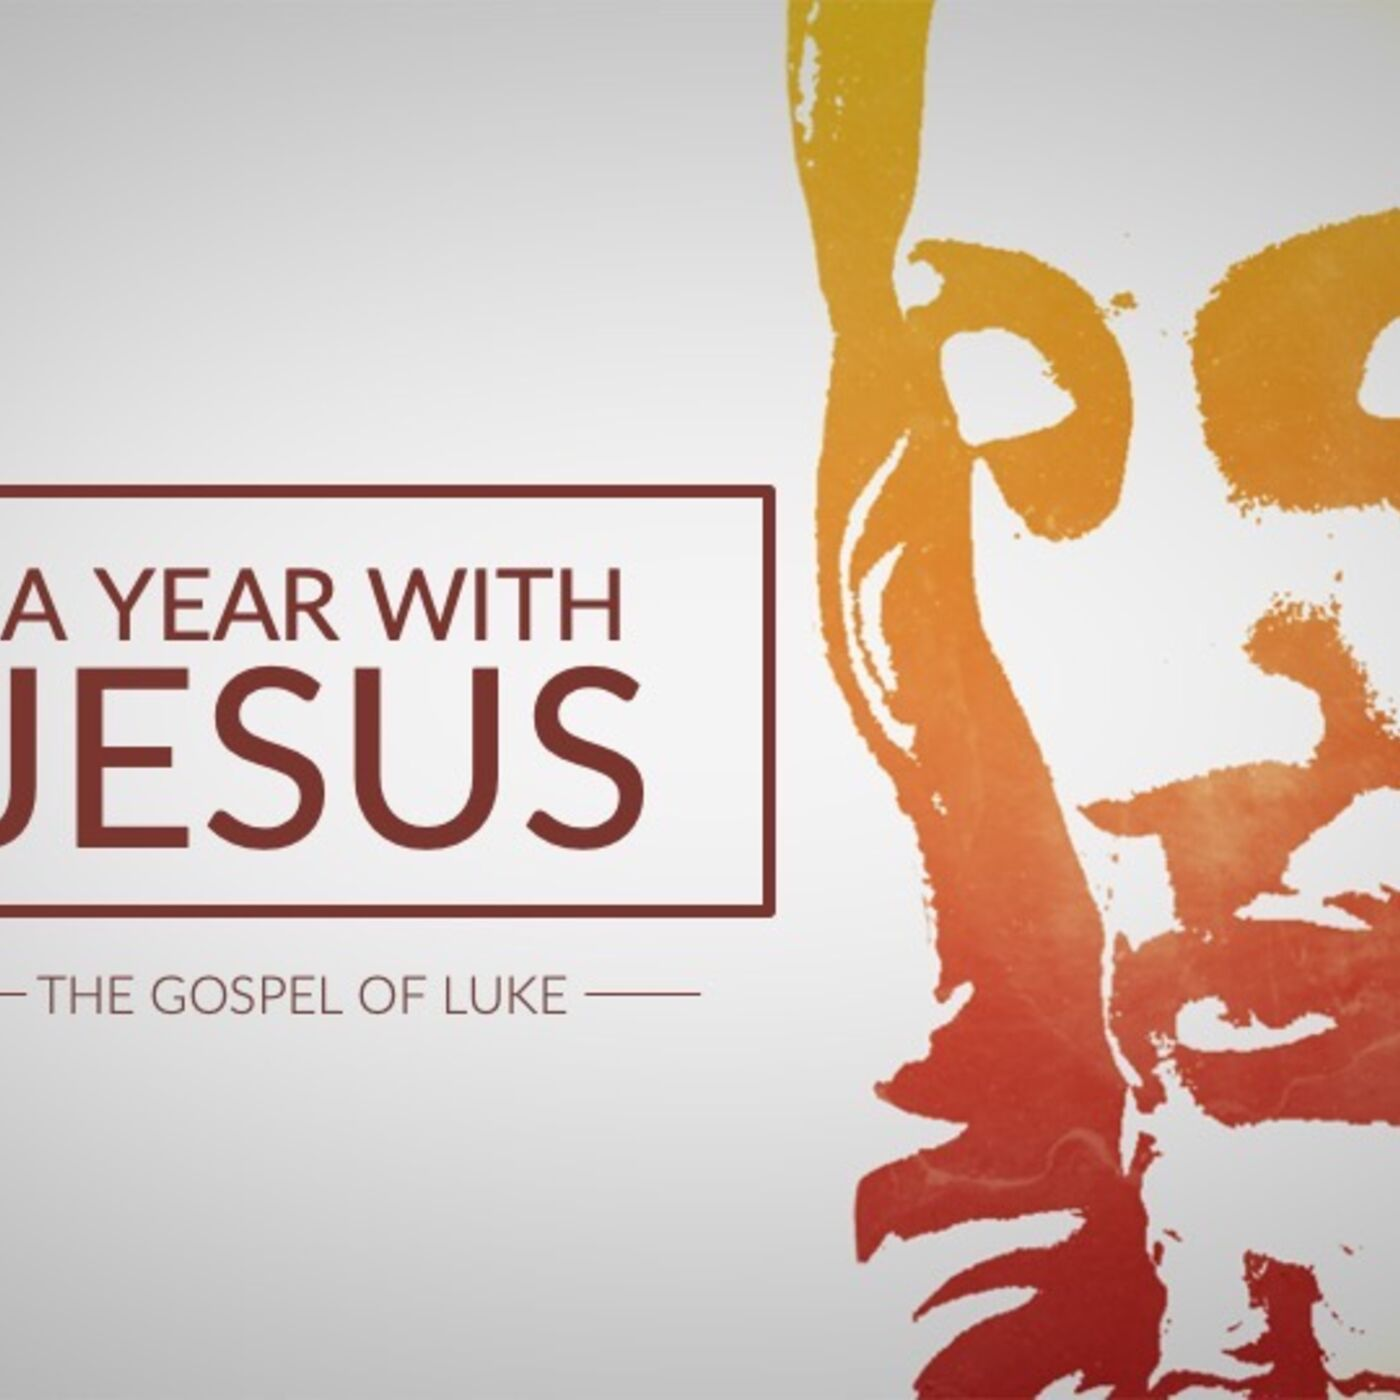 A Year With Jesus: 55 Words To Realign Your Heart (Luke 11:1-4)